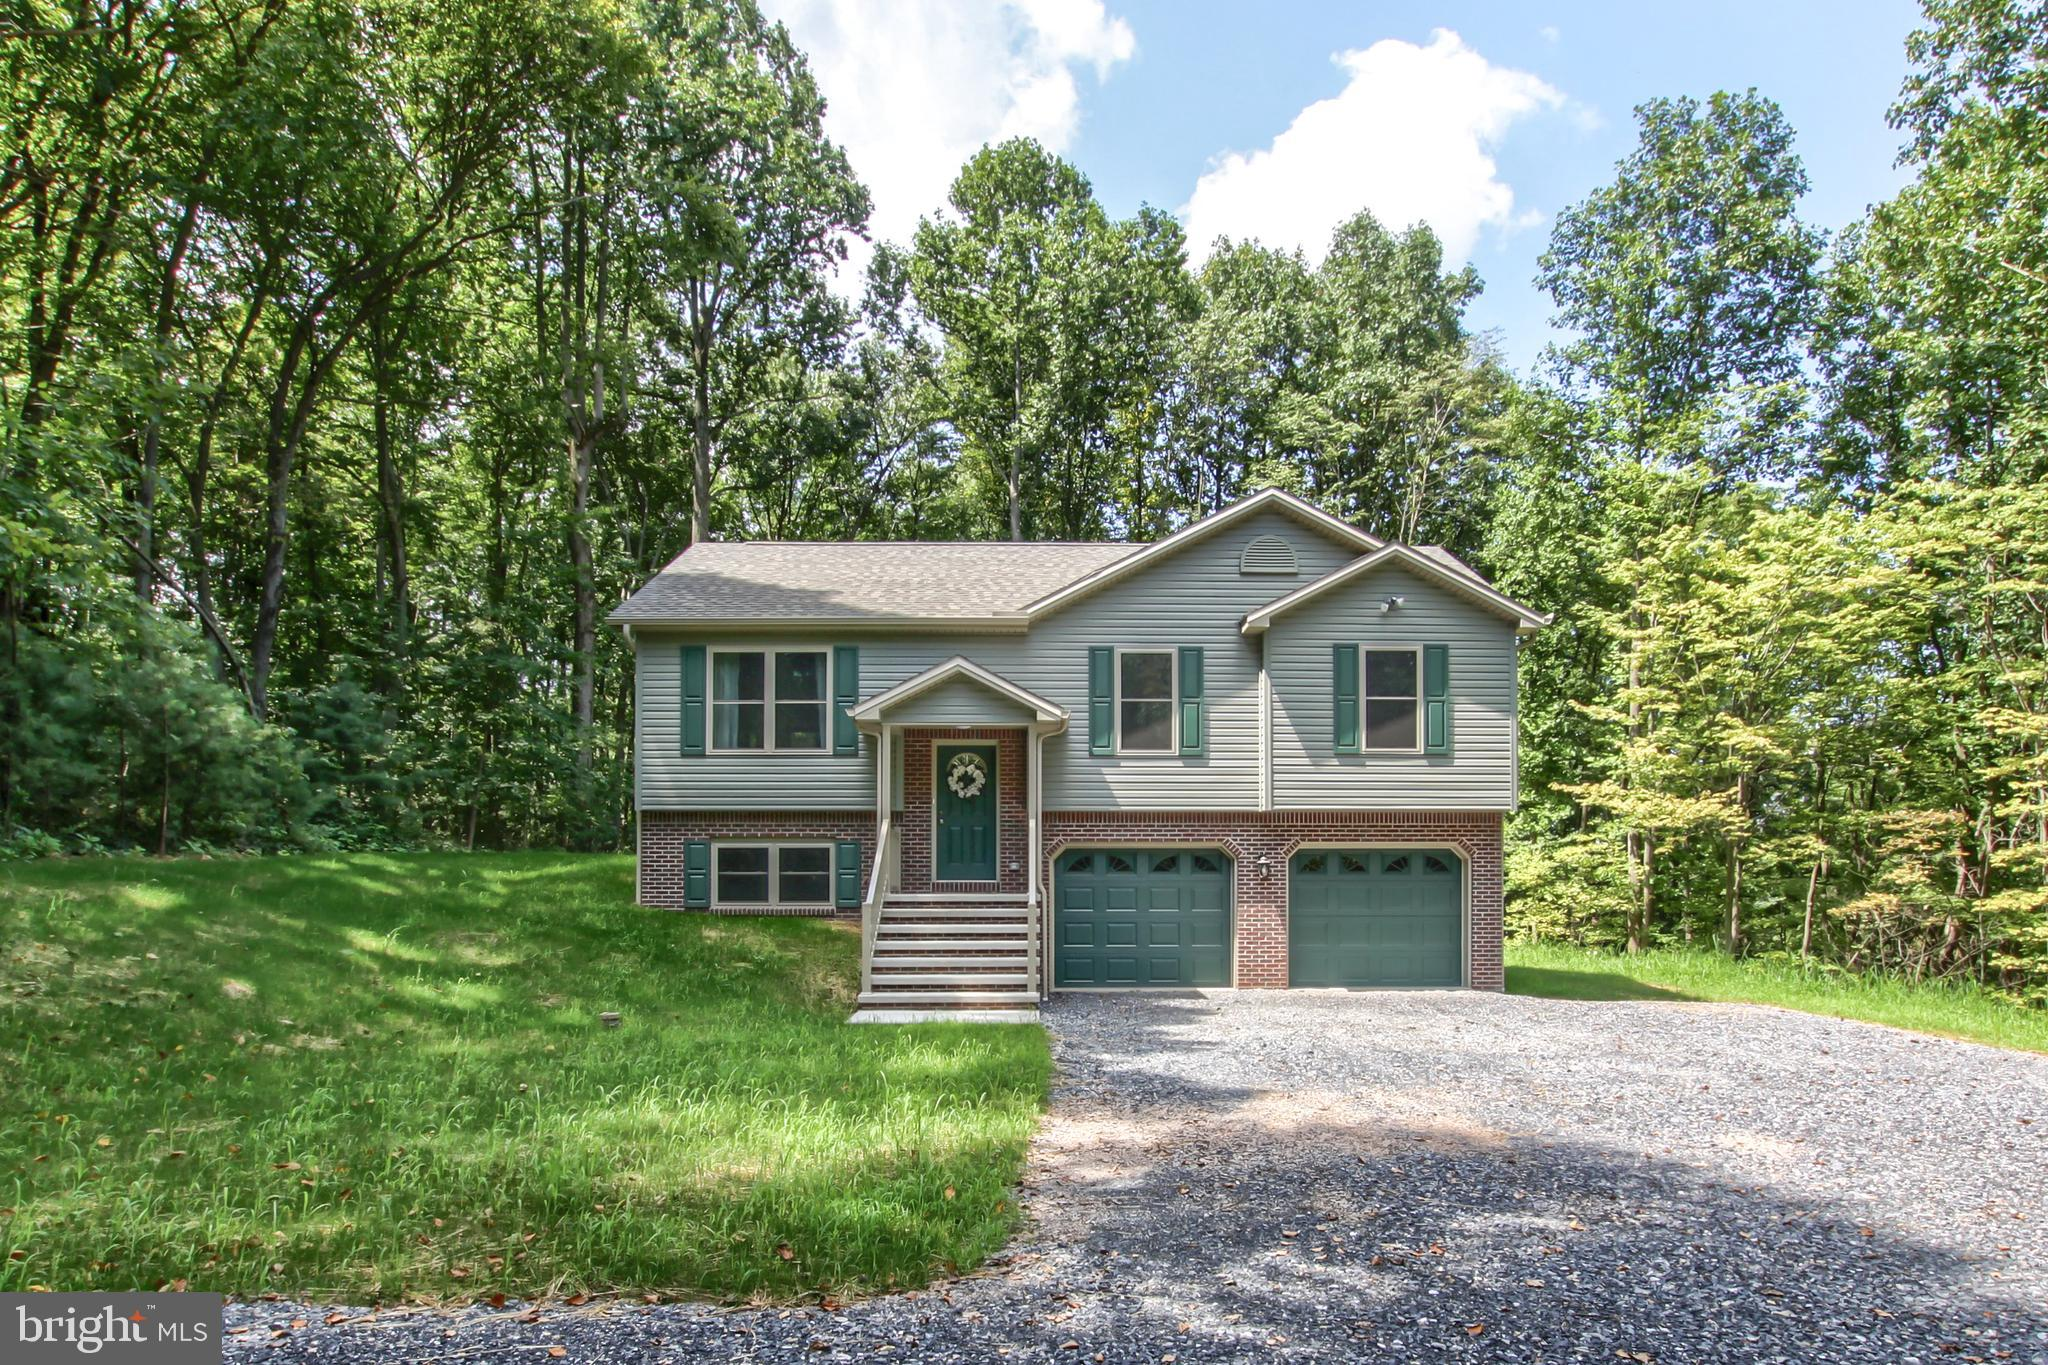 165 RIDGE ROAD, NEW BLOOMFIELD, PA 17068